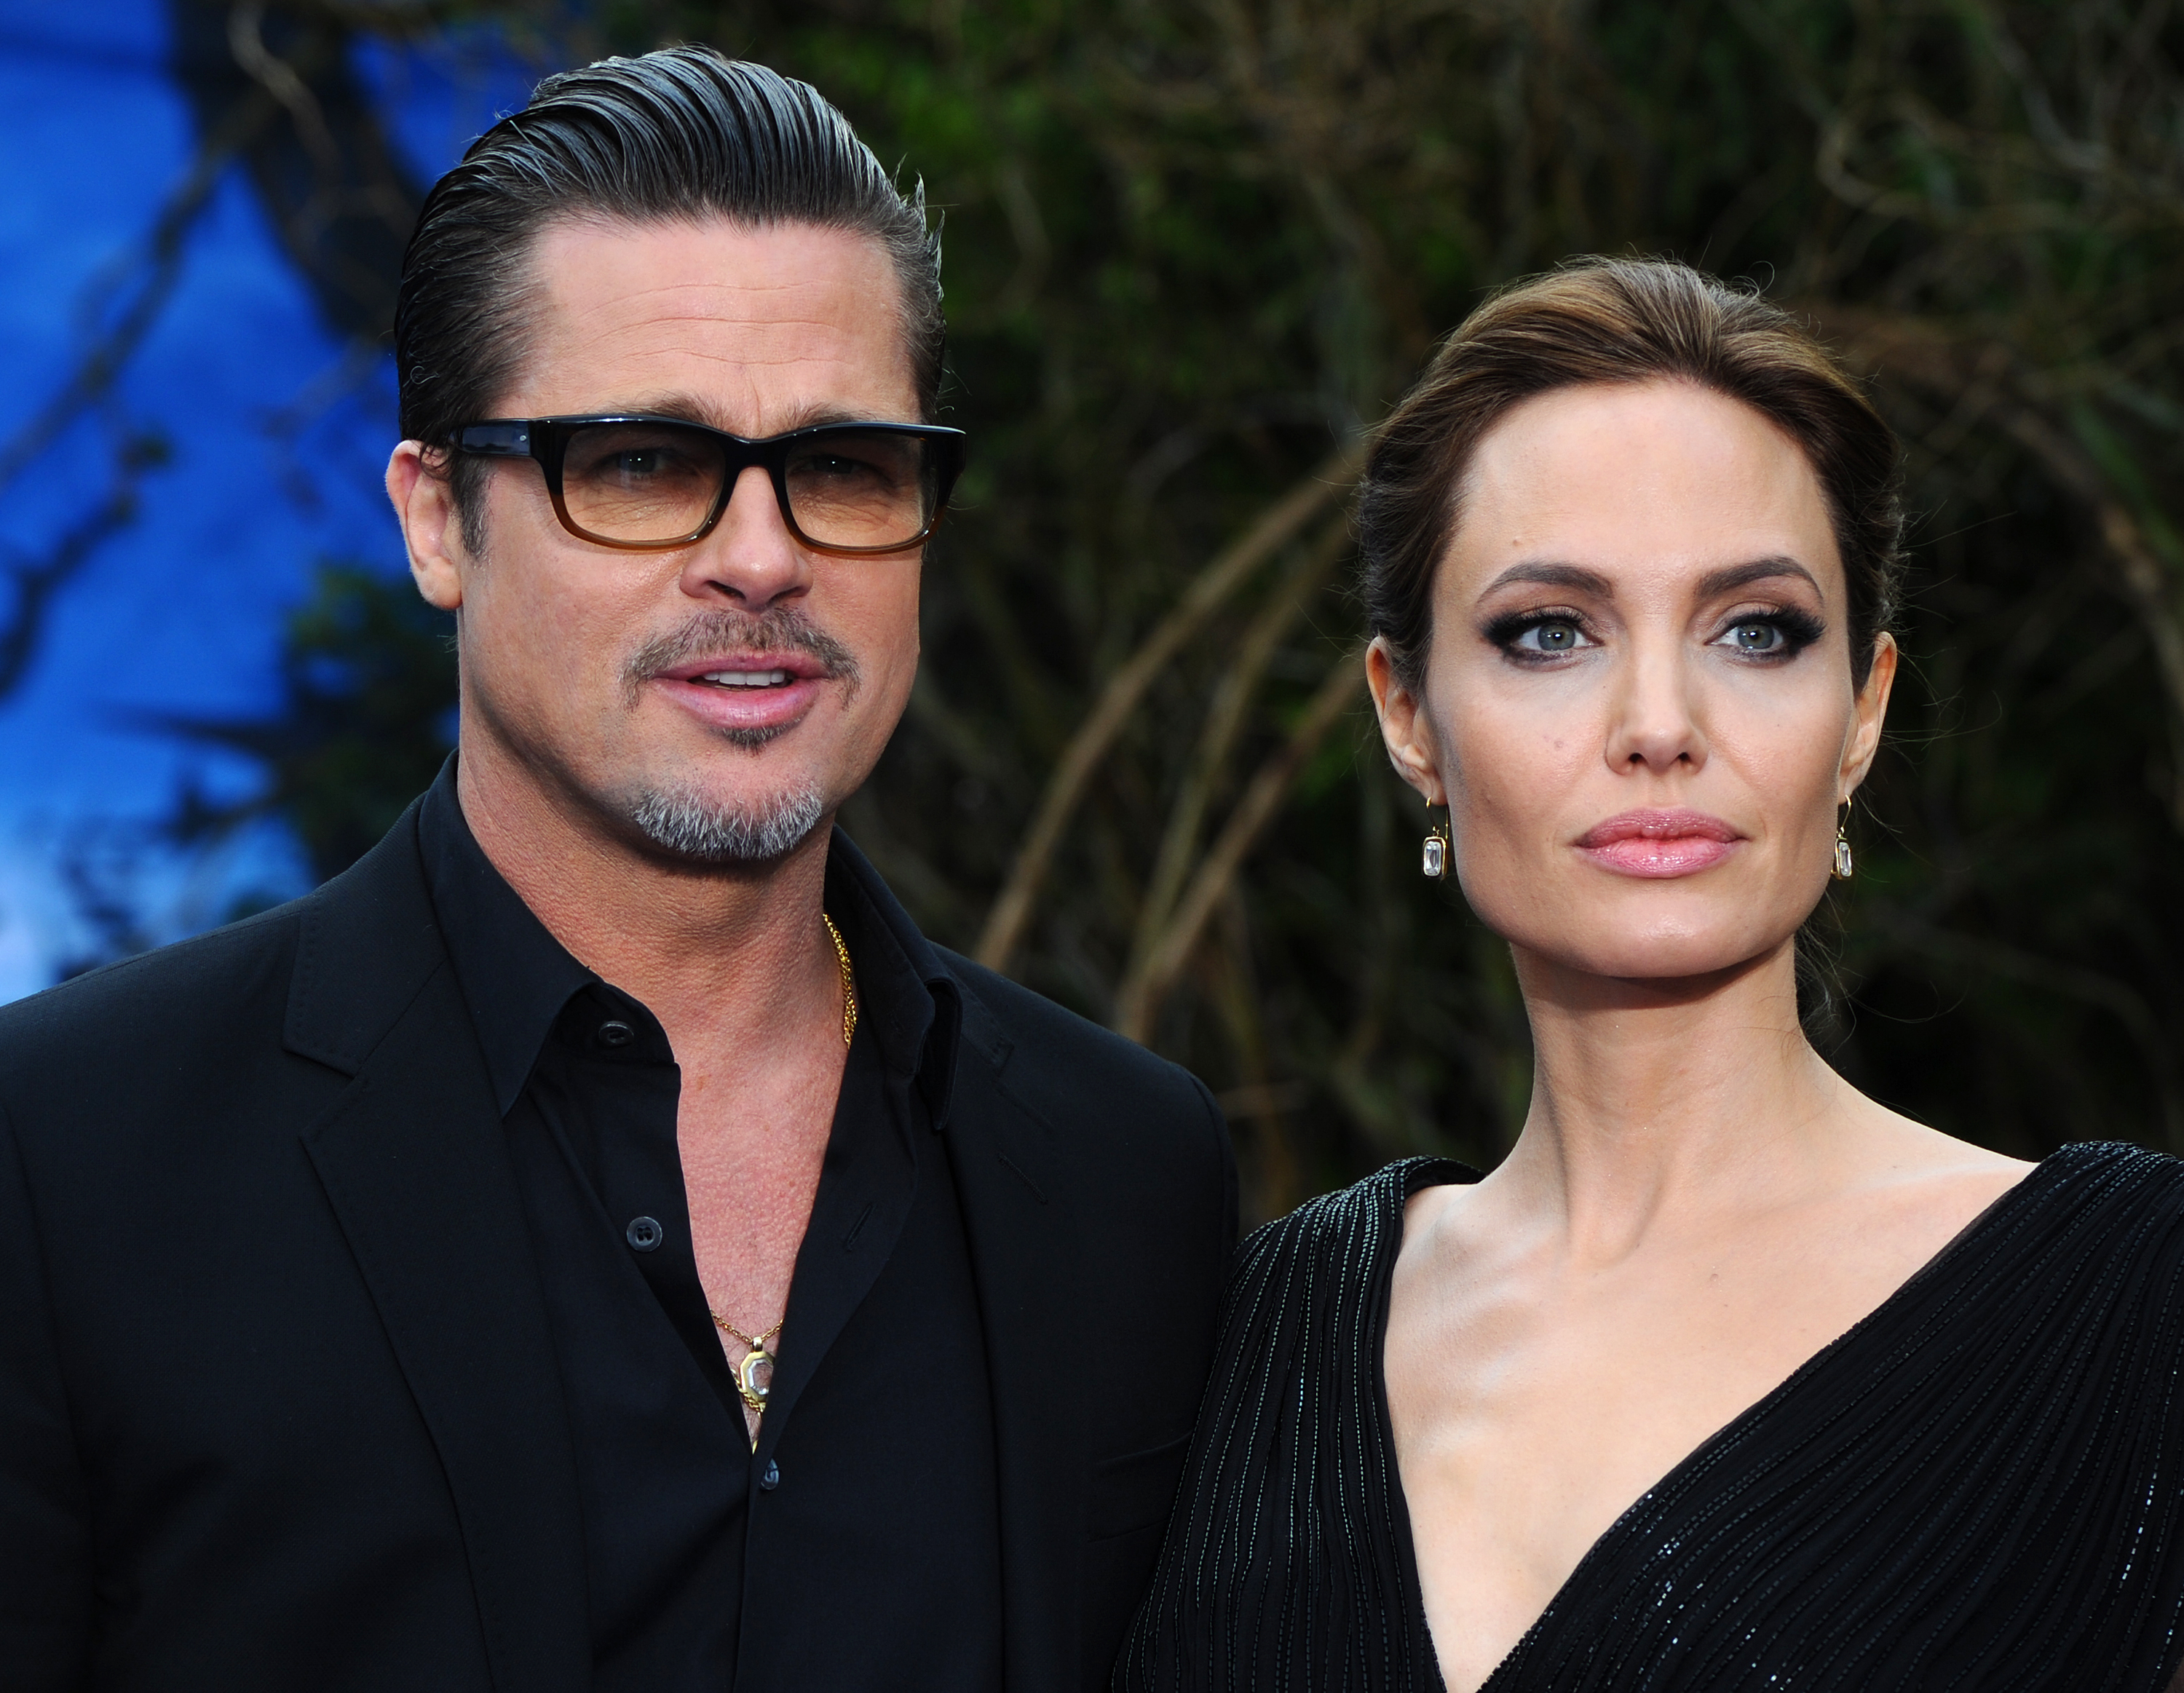 Brad Pitt 'disgusted' at divorce battle with Angelina Jolie being made public